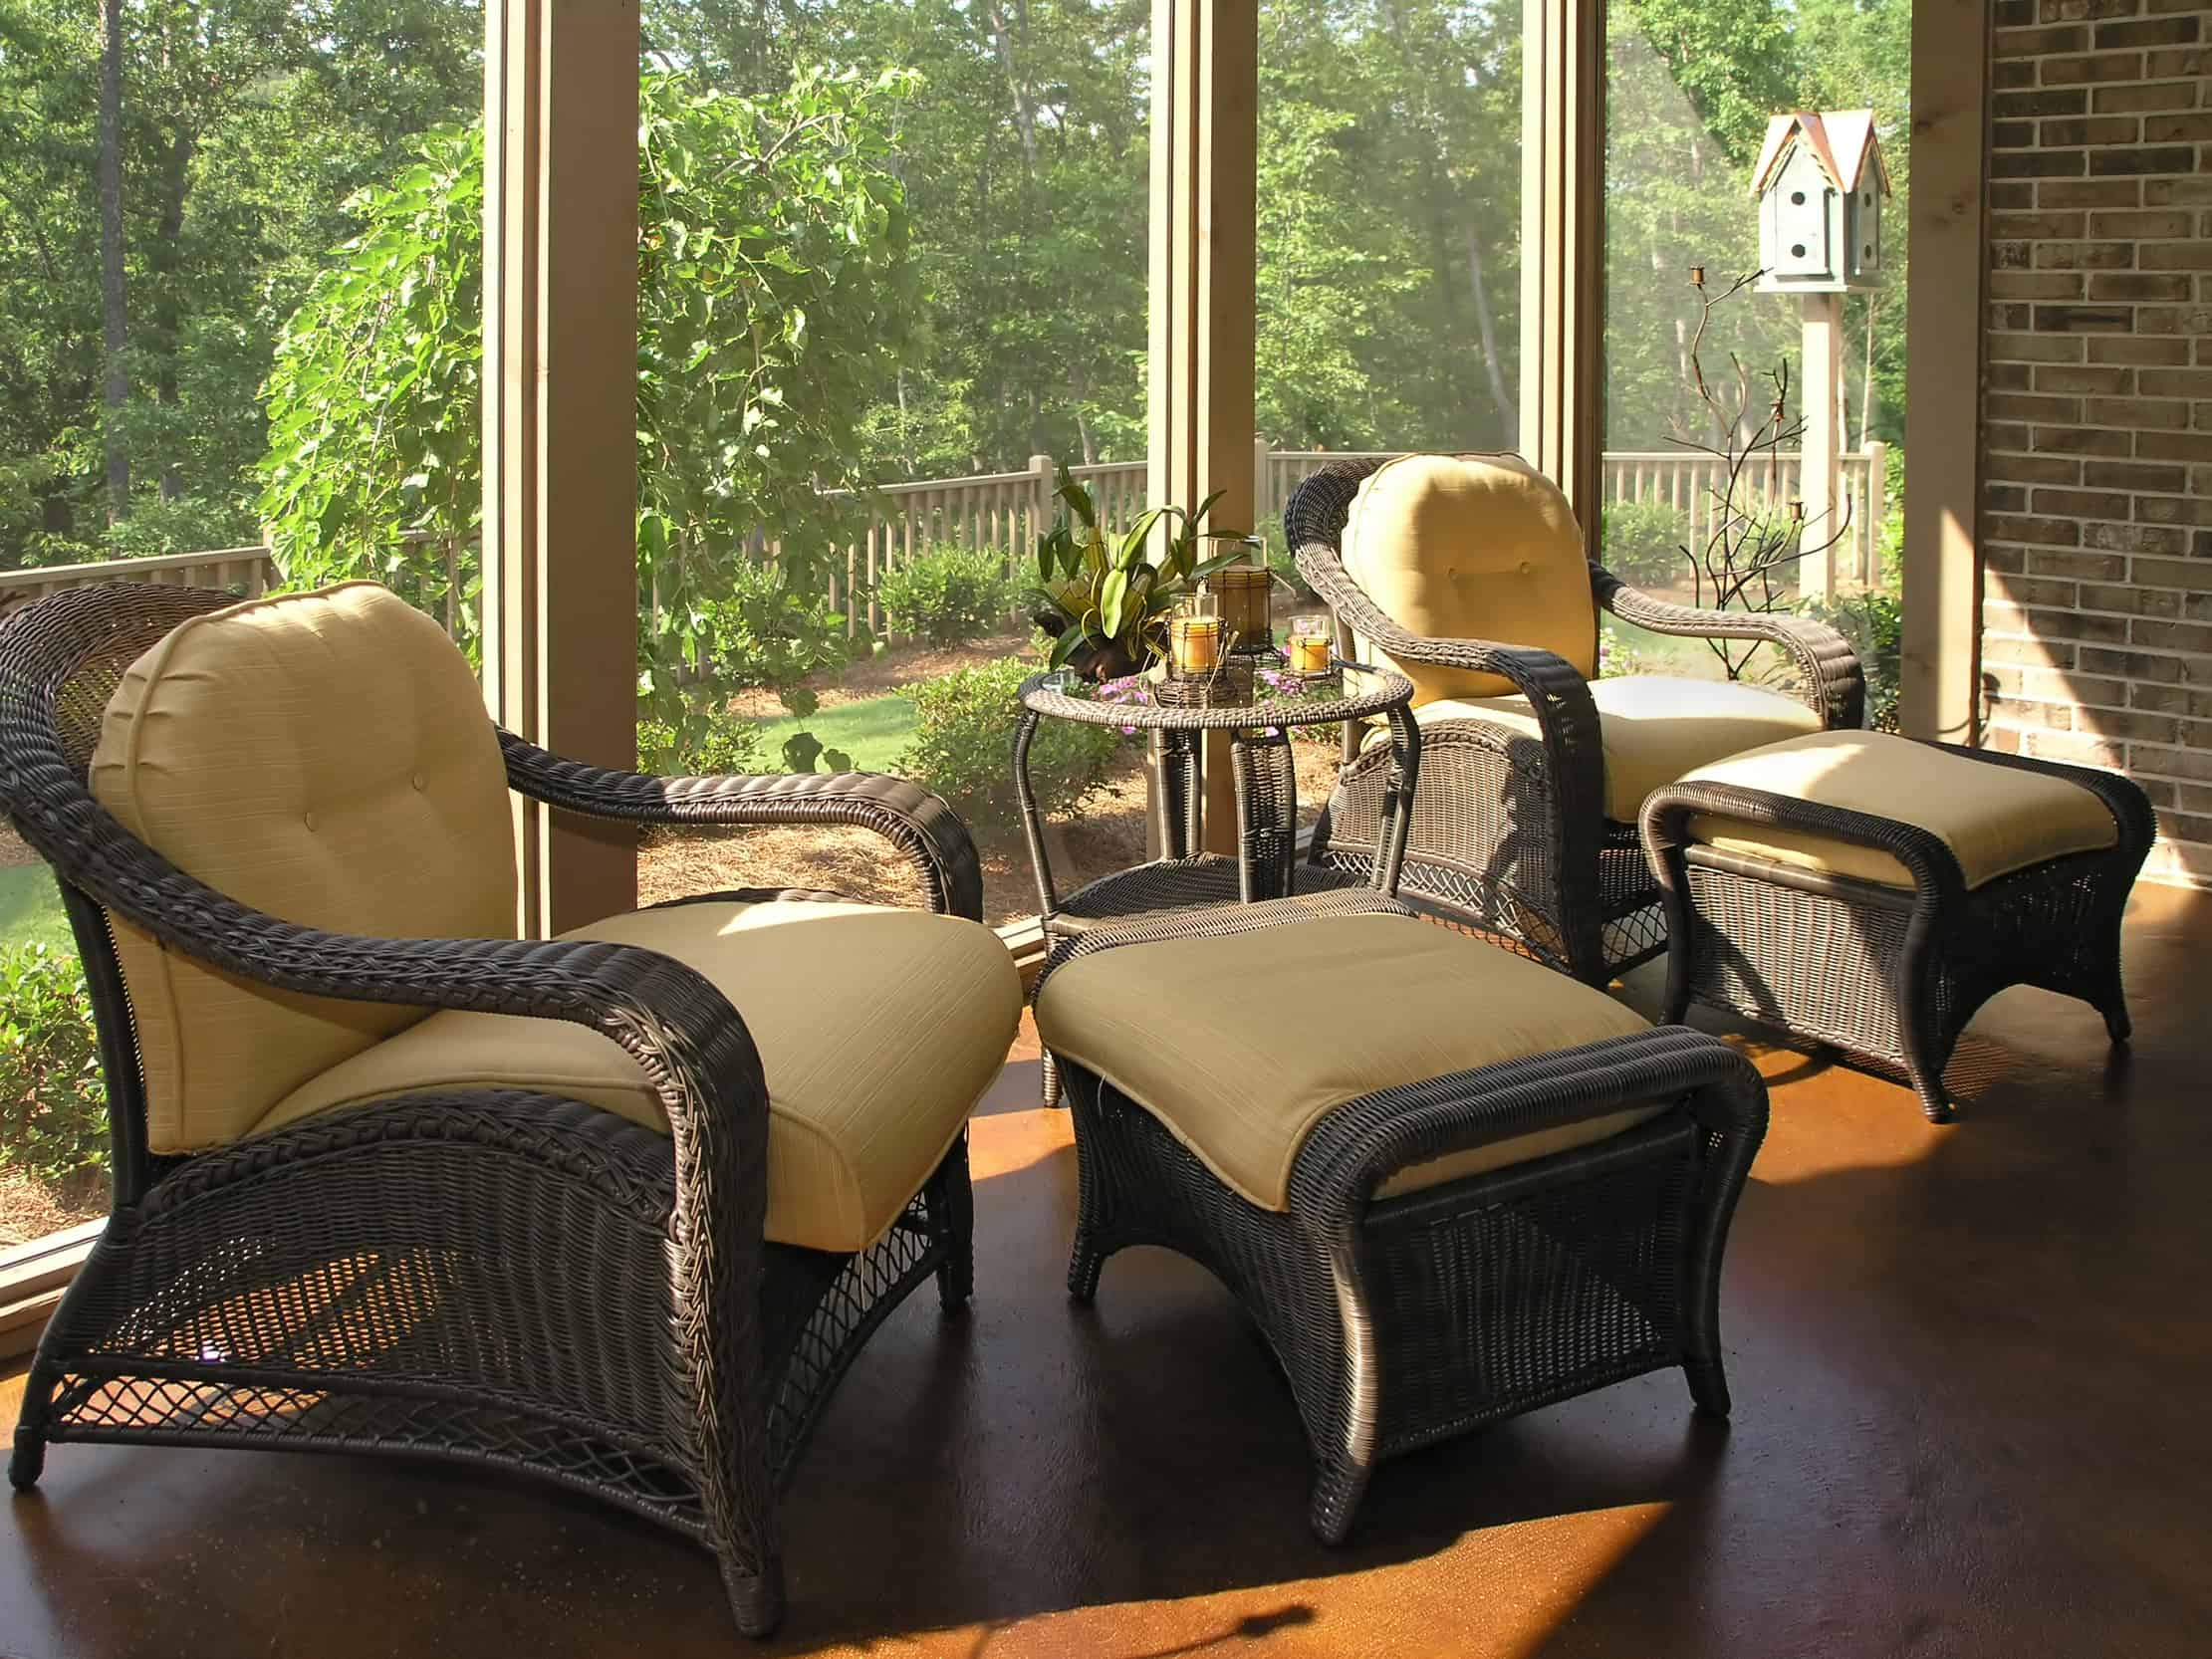 Different Choices for Outdoor Patio Furniture